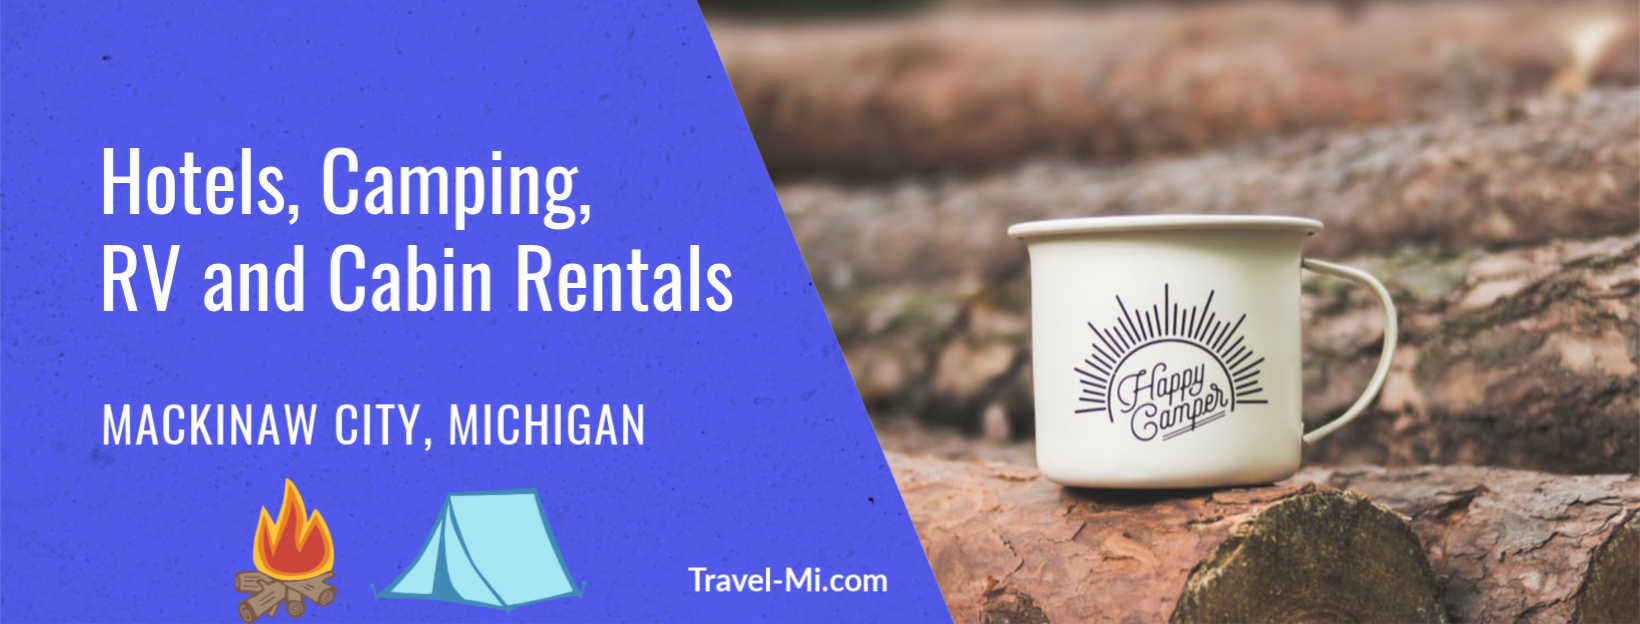 Hotels, camping, RV and cabin rentals in Mackinaw City